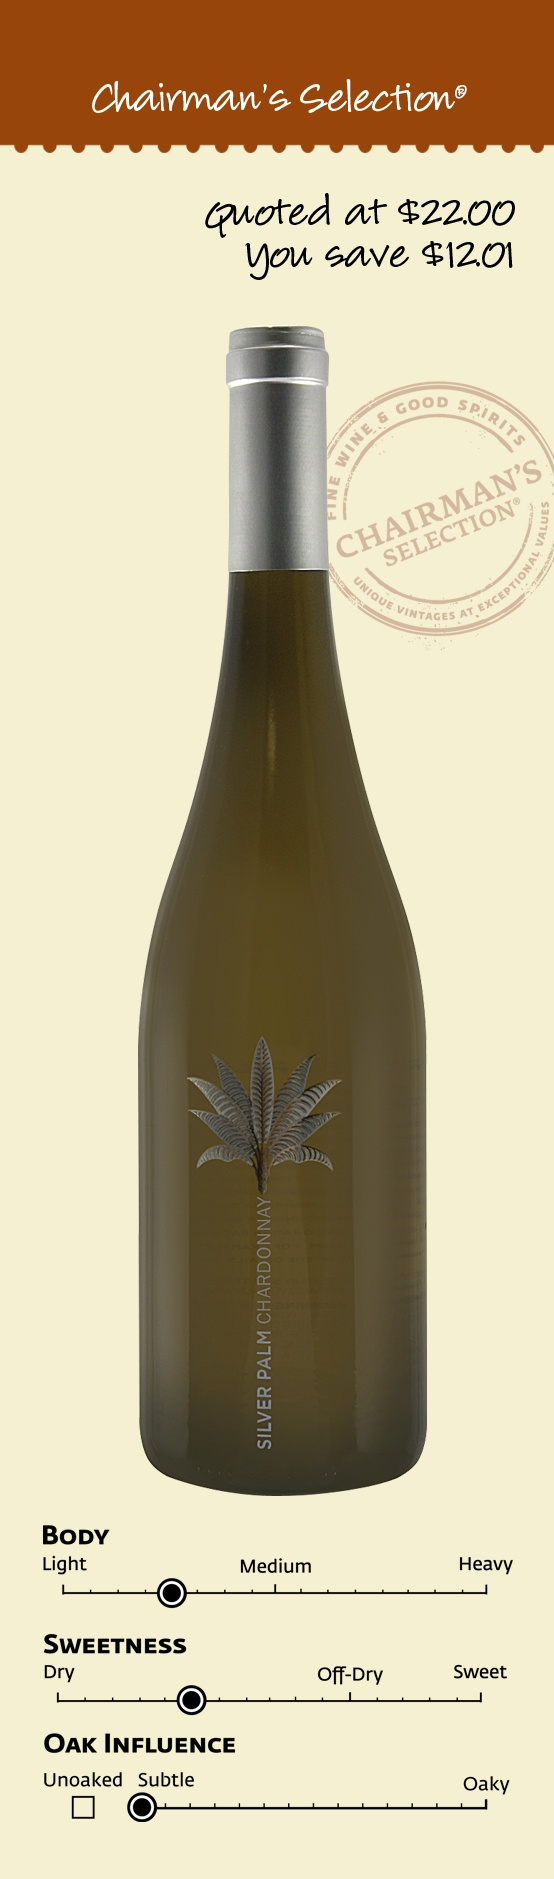 """Silver Palm Chardonnay, North Coast, California, 2009: This """"debut Chardonnay glistens in the glass and greets the nose with the perfume of apple blossom and pear. On the palate, ripe flavors of white peach, Gravenstein apple and Meyer lemon glide seamlessly like a silk ribbon. A near flinty finish provides balanced acidity and leaves the palate yearning for another sip."""" – Winemaker's notes, $9.99"""